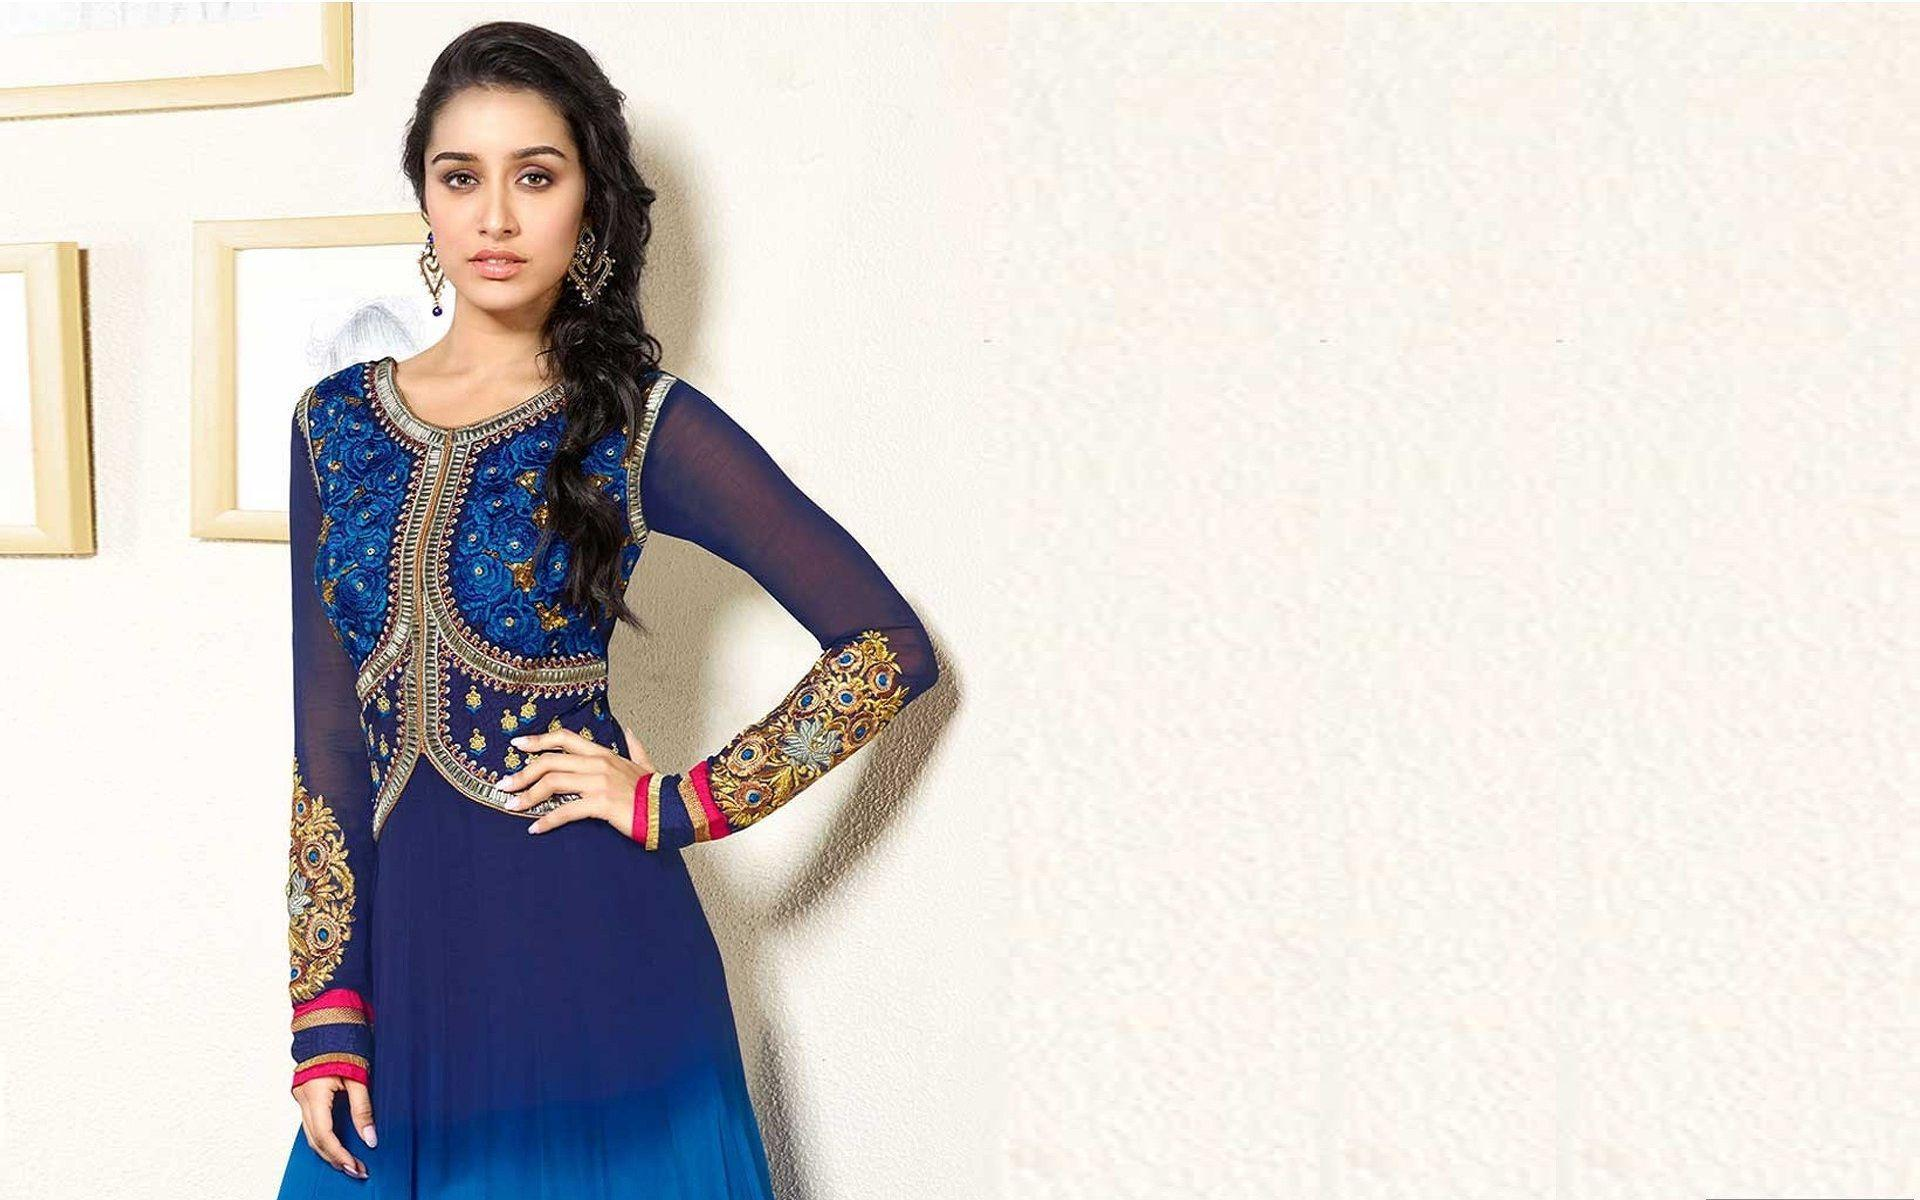 shraddha_kapoor_wallpaper_97338036